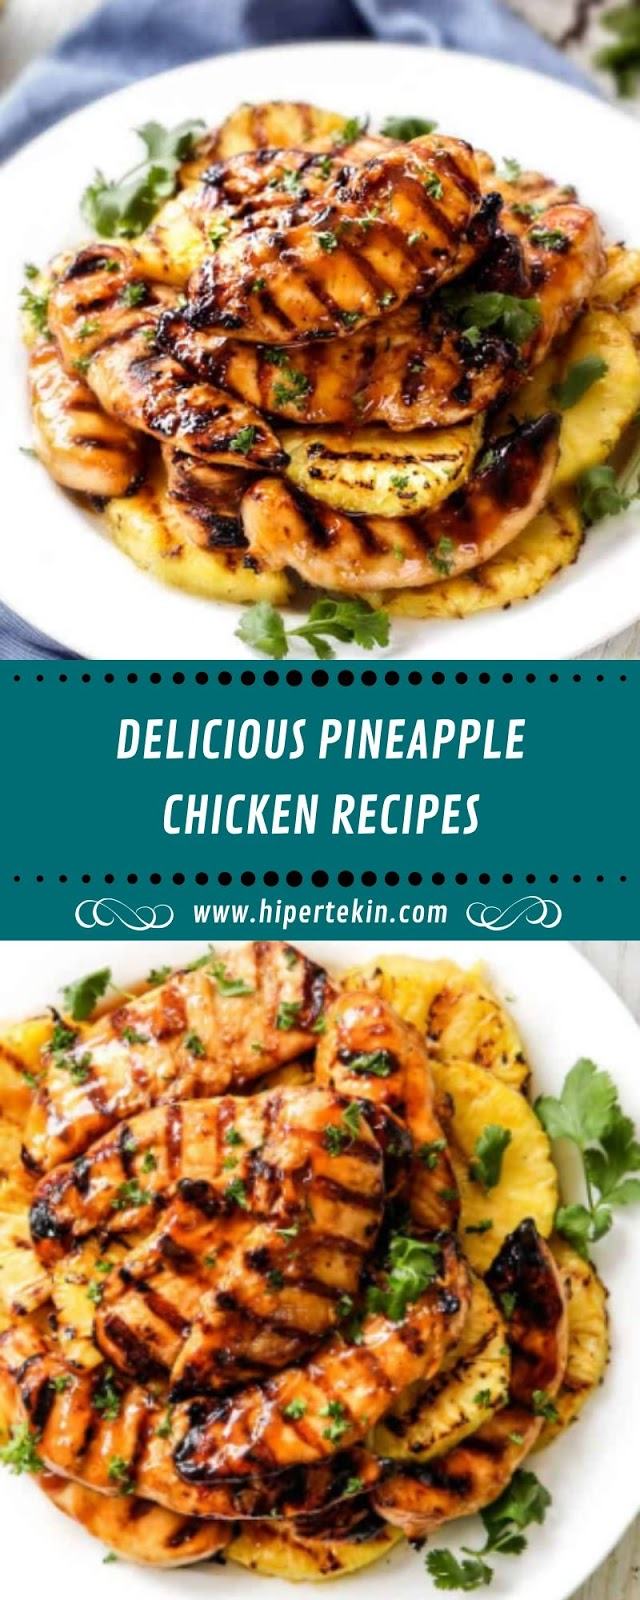 DELICIOUS PINEAPPLE CHICKEN RECIPES